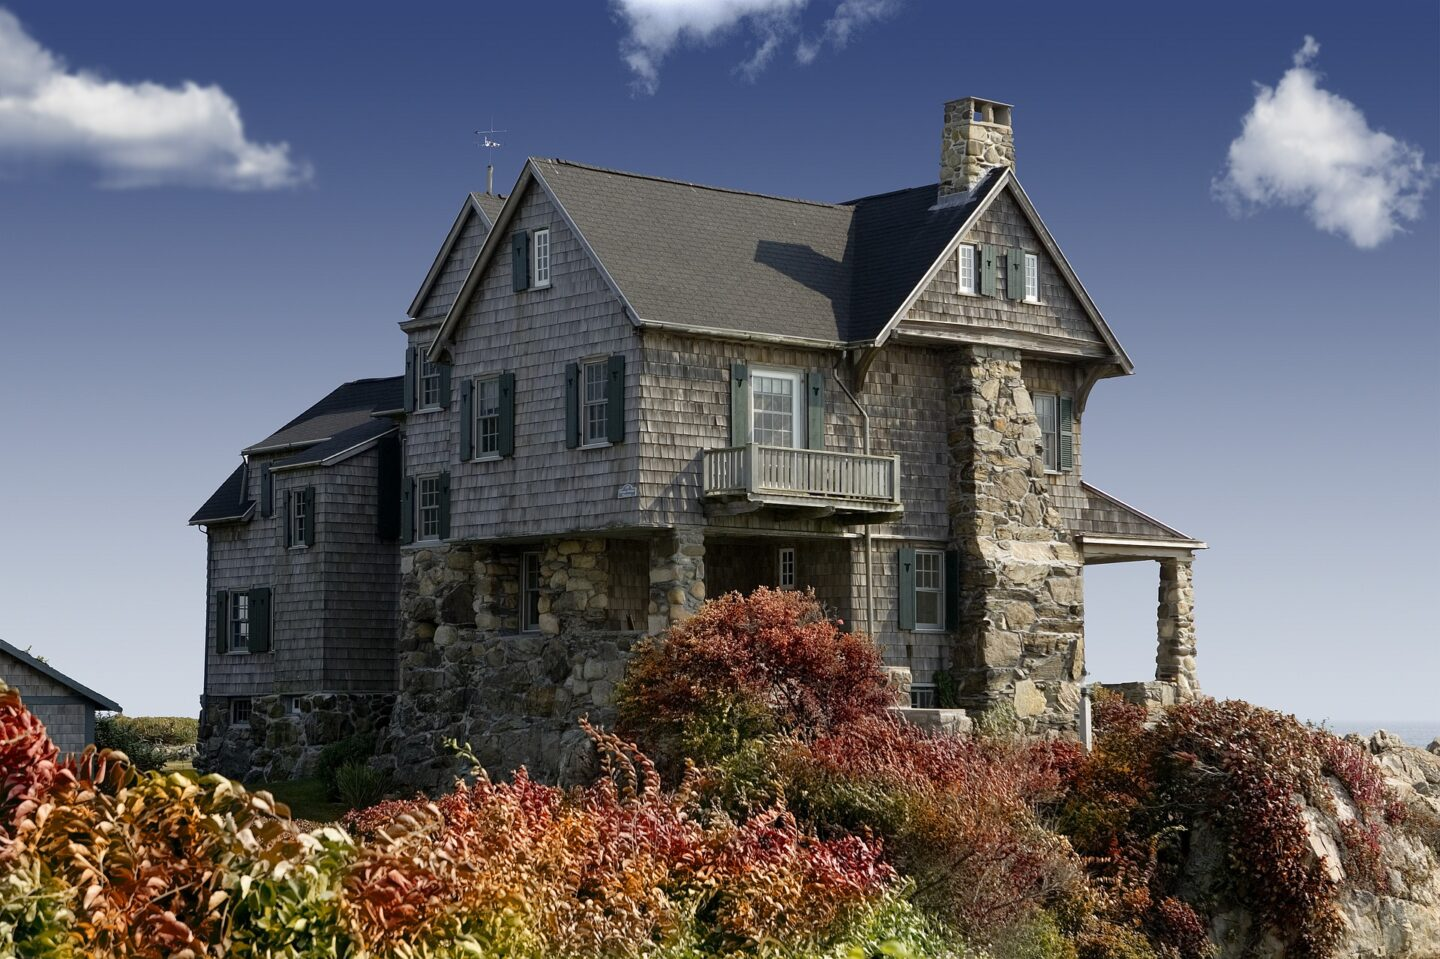 USA: 4 Most Haunted Historical Sites